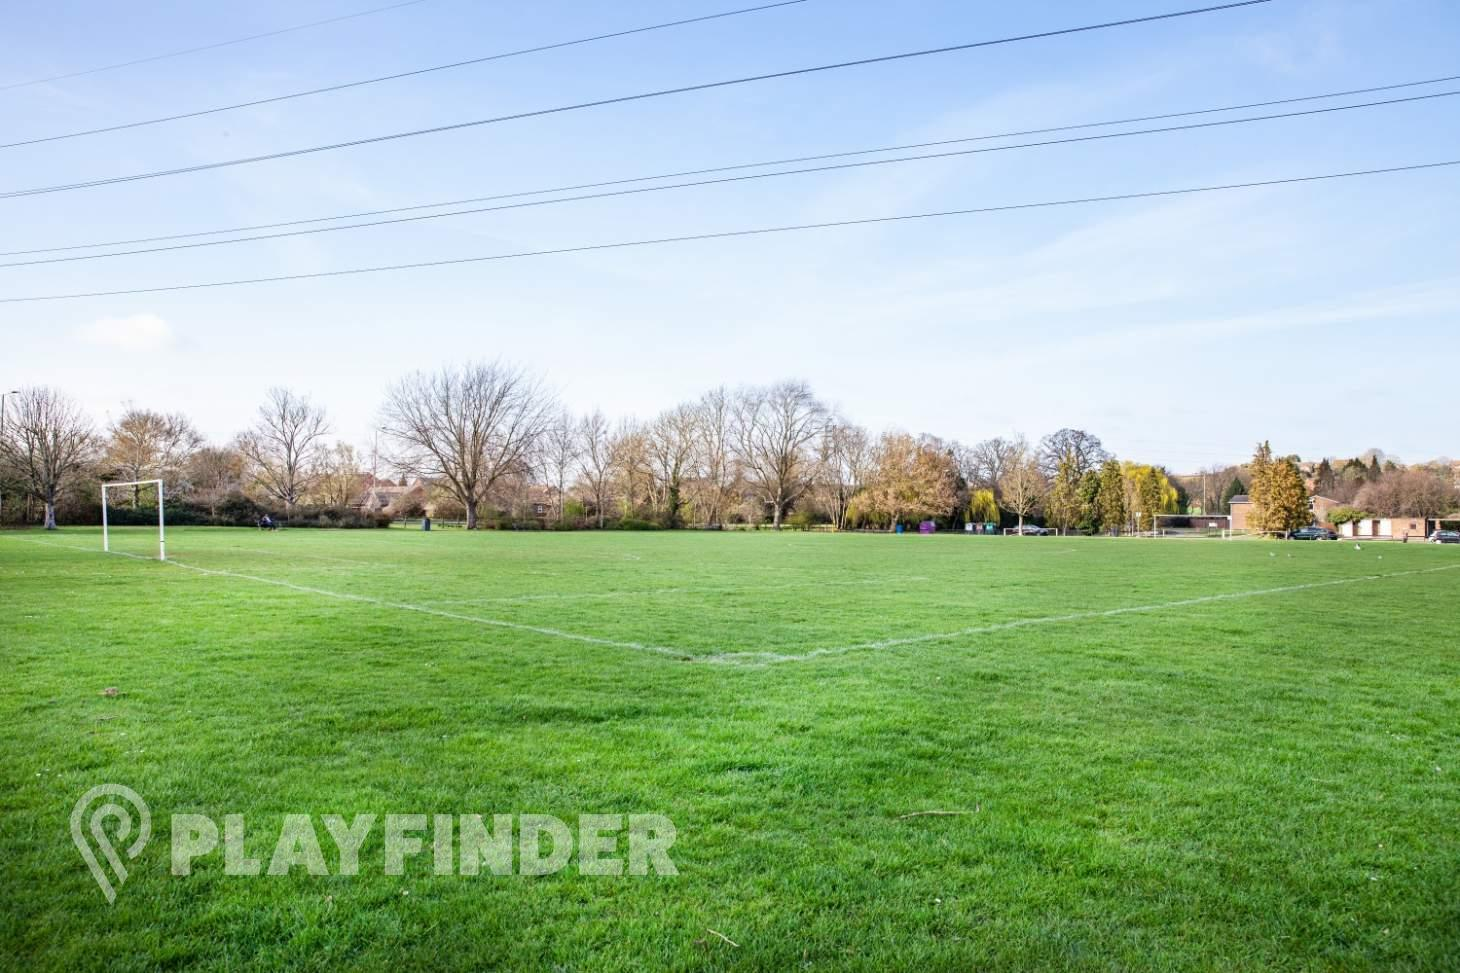 Mowsbury Park 11 a side | Grass football pitch